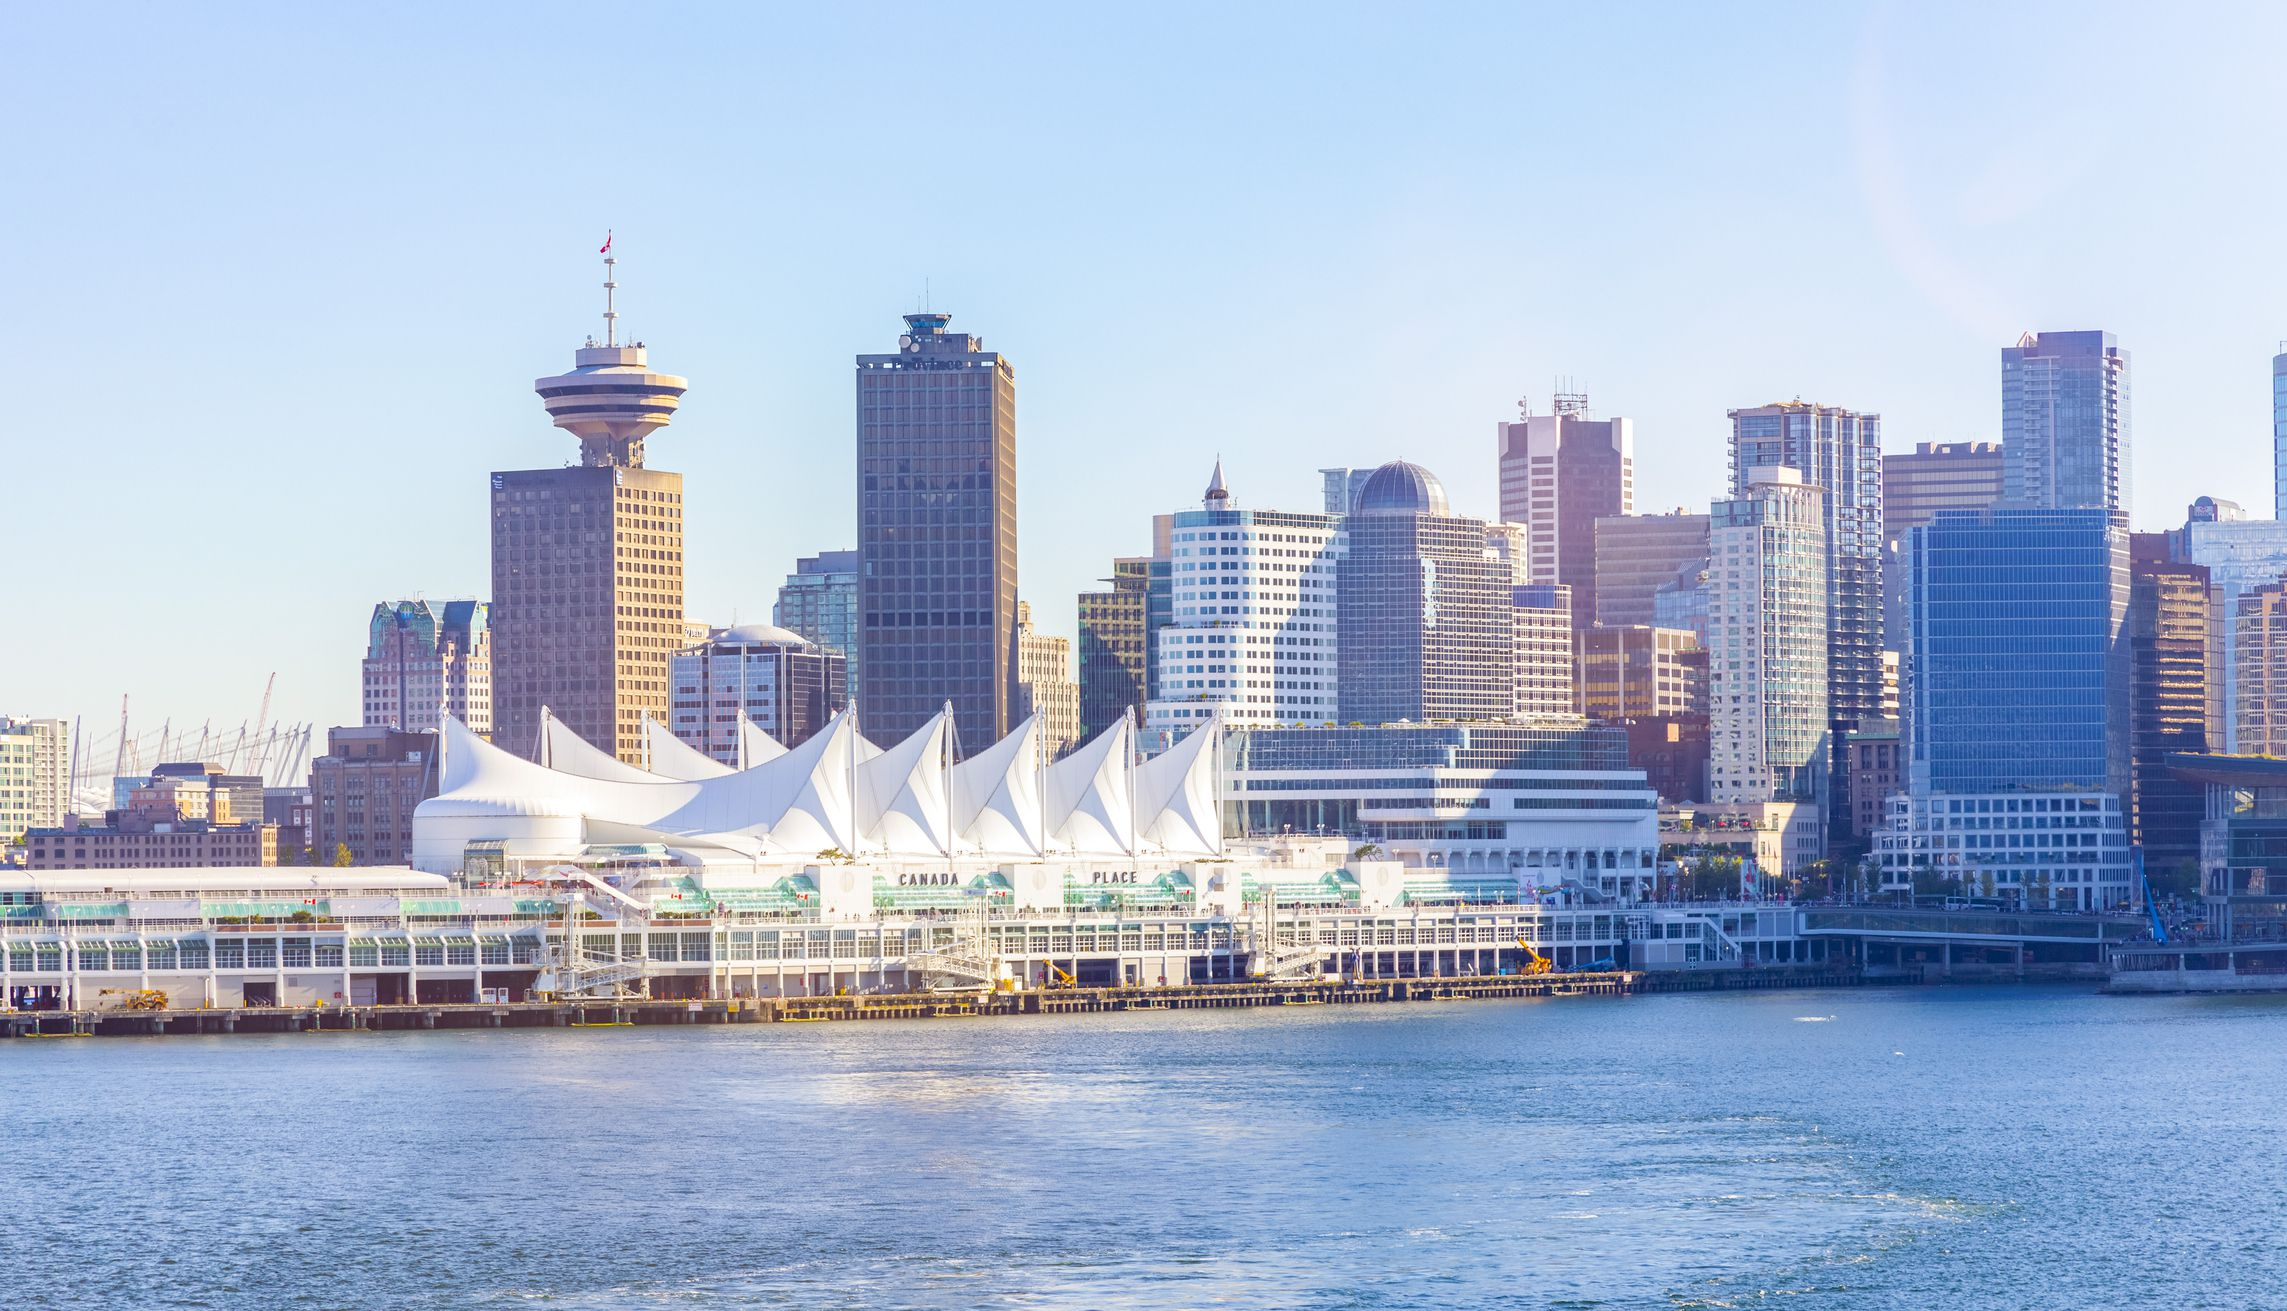 Canada Place, Vancouver: The Complete Guide